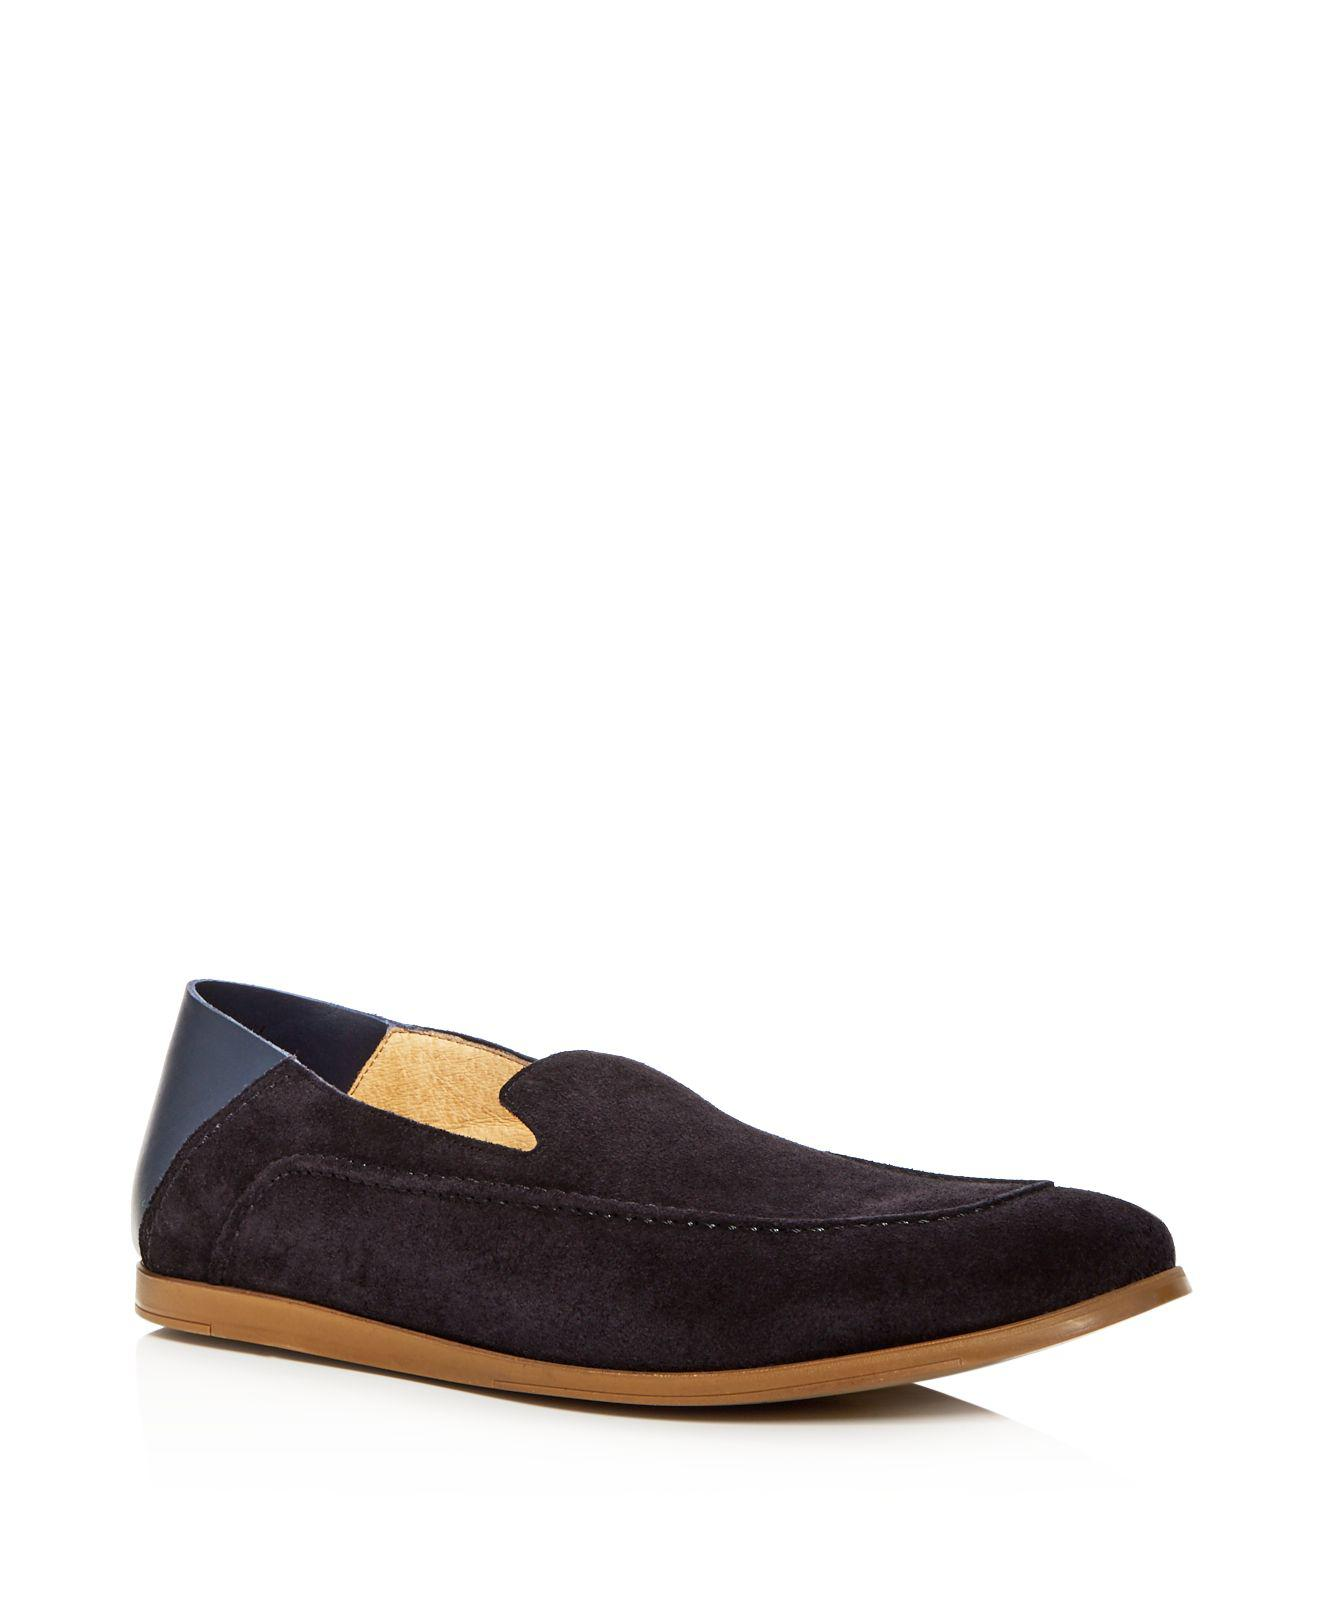 Kenneth Cole Men's Place Suede Apron Toe Convertible Smoking Slippers rjdZFQ0Px